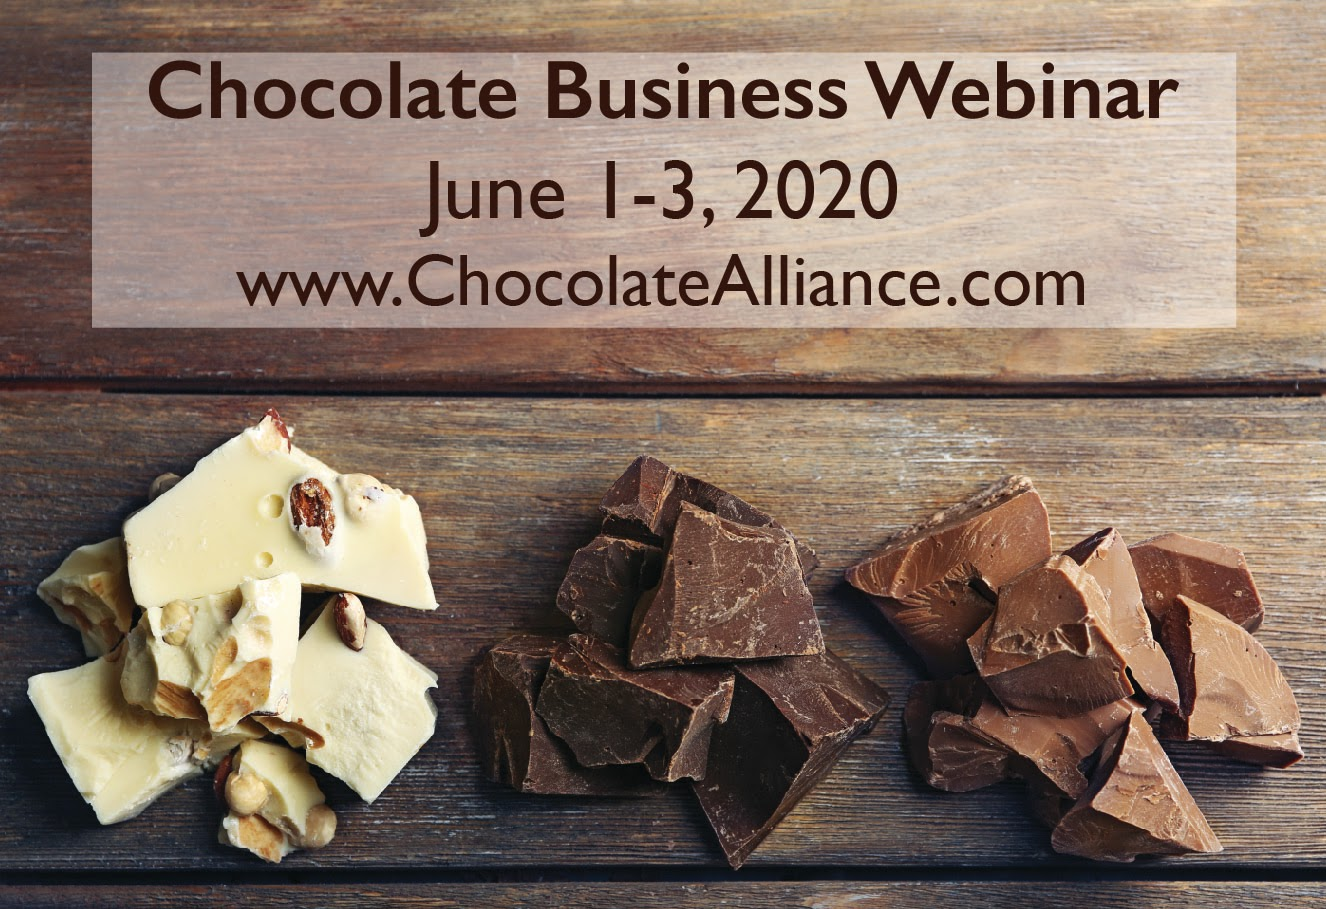 The Chocolate Alliance Announces Chocolate Business Webinar Series June 1-3